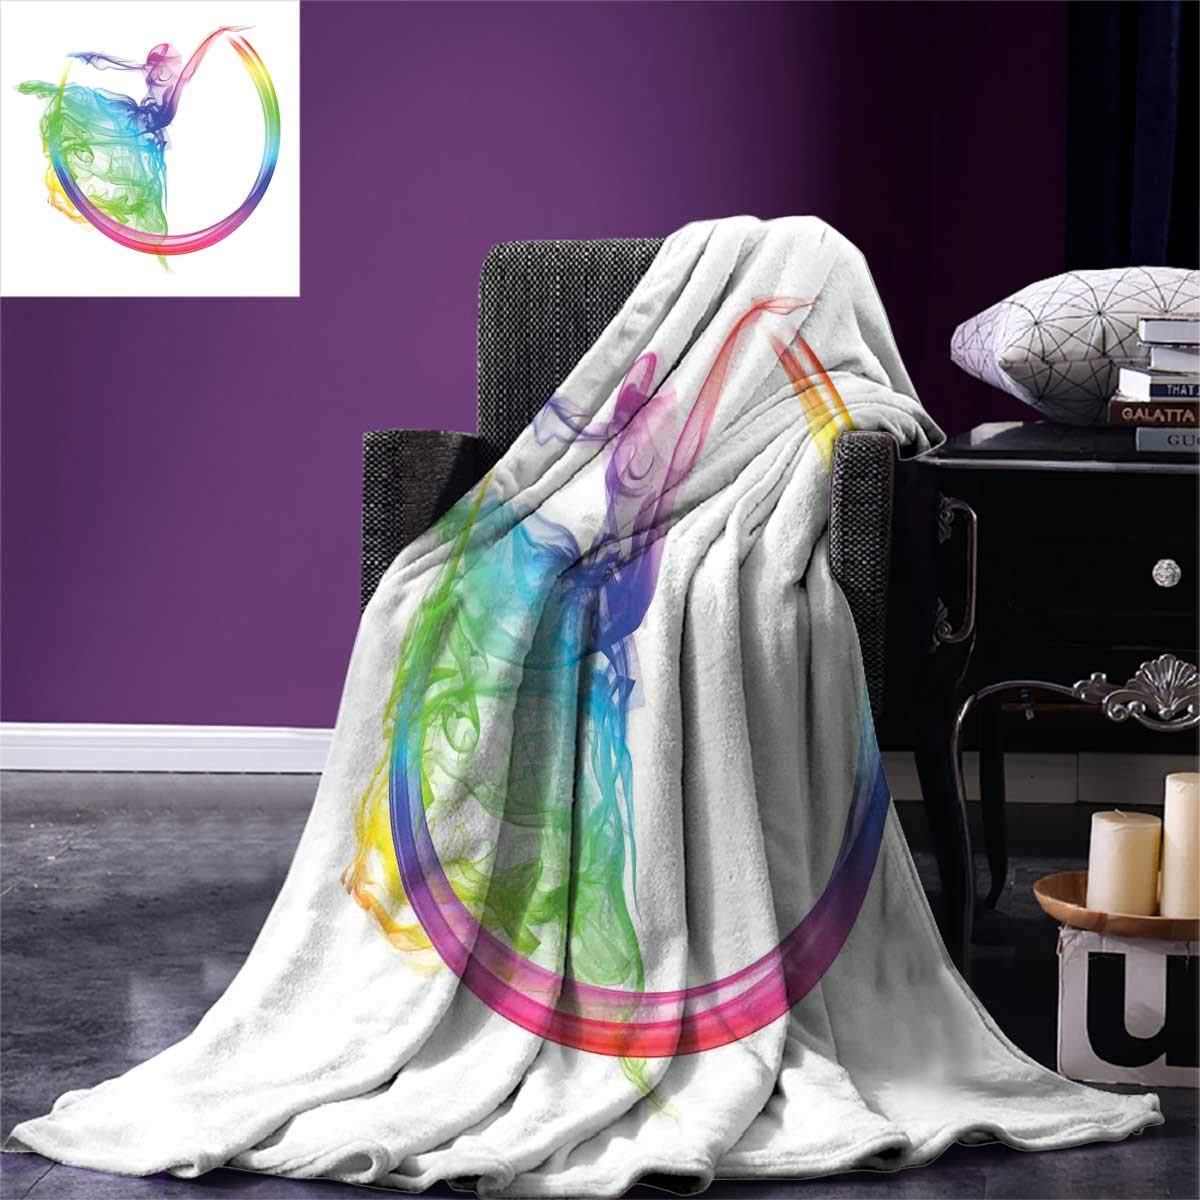 Abstract Home Decor,Picnic Blanket,Smoke Dance Shape Silhouette of Dancer Ballerina Rainbow Colors Fantasy,Beach Blanket,Size:60''x50'' by Anlongfive (Image #1)